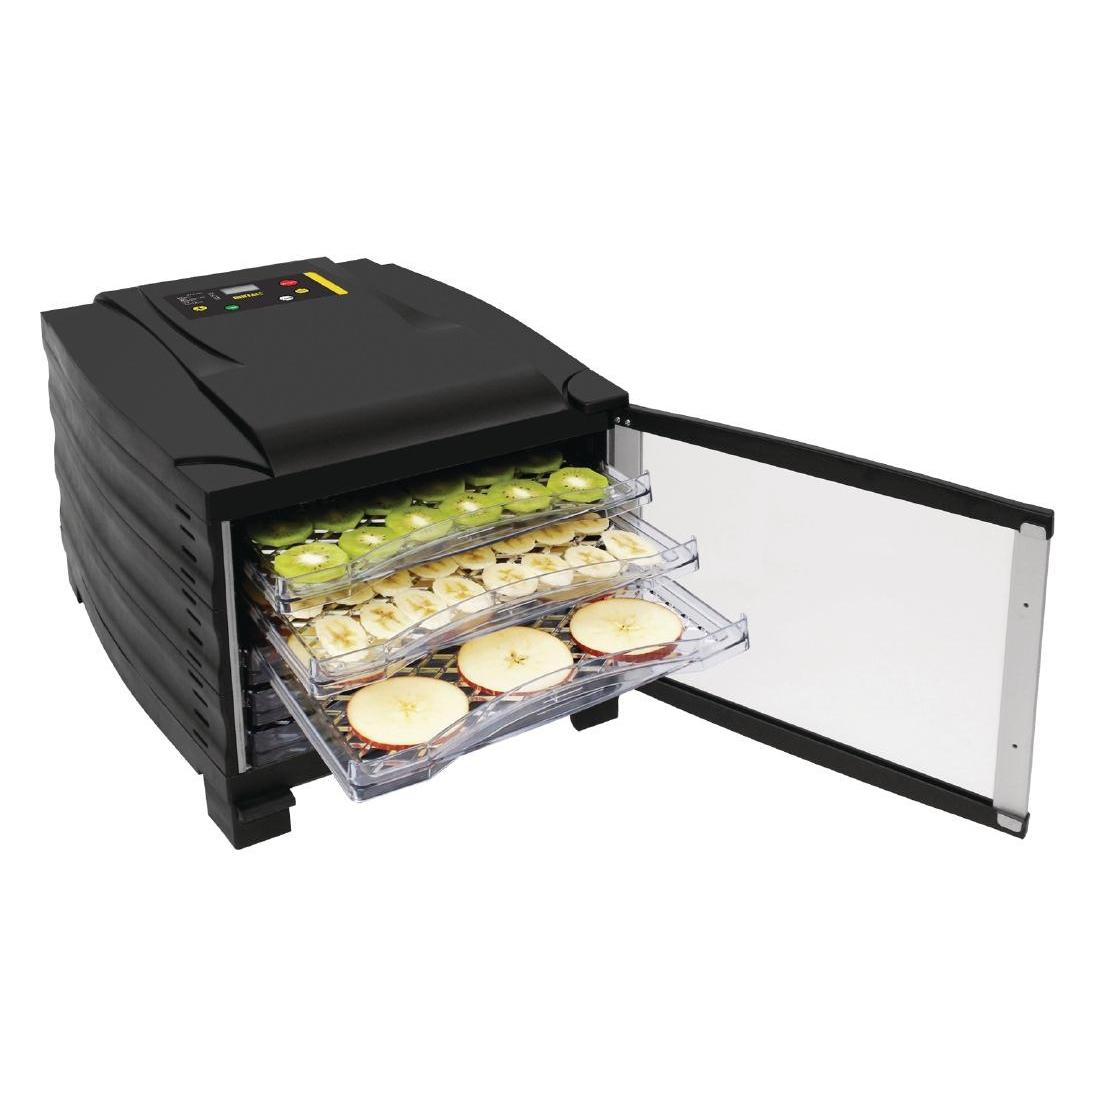 CD966 - Buffalo 6 Tray Dehydrator - CD966